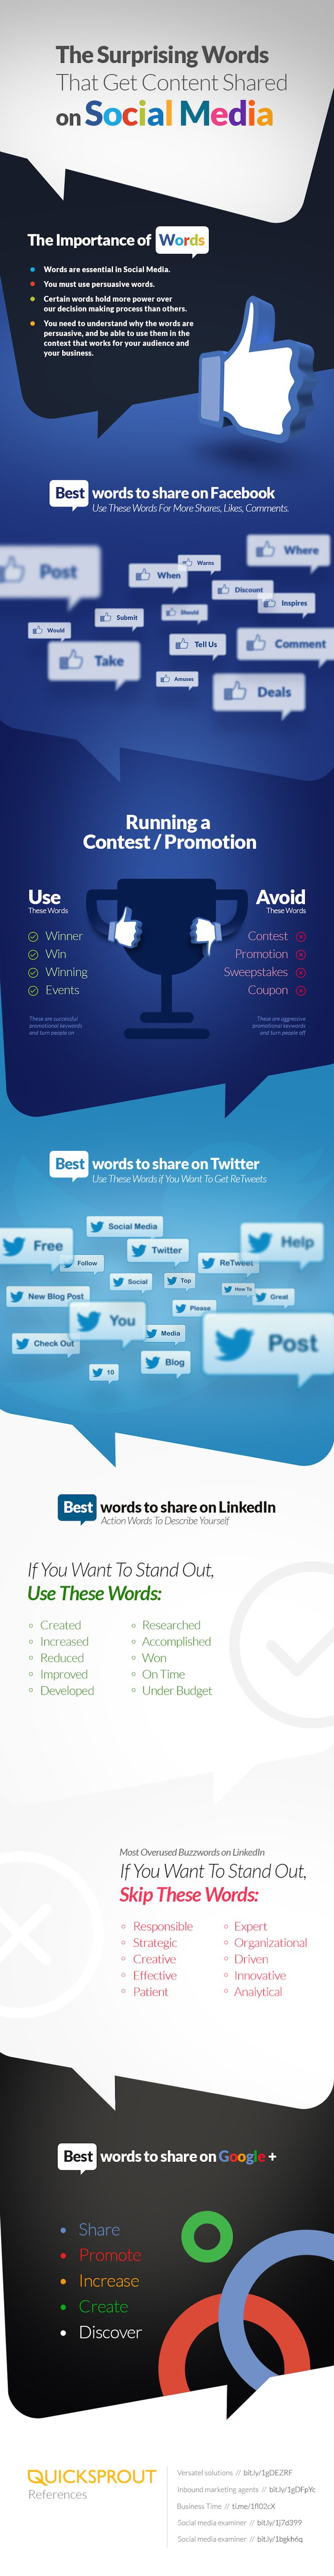 The Surprising Words That Get Content Shared on #SocialMedia - #infographic #contentmarketing